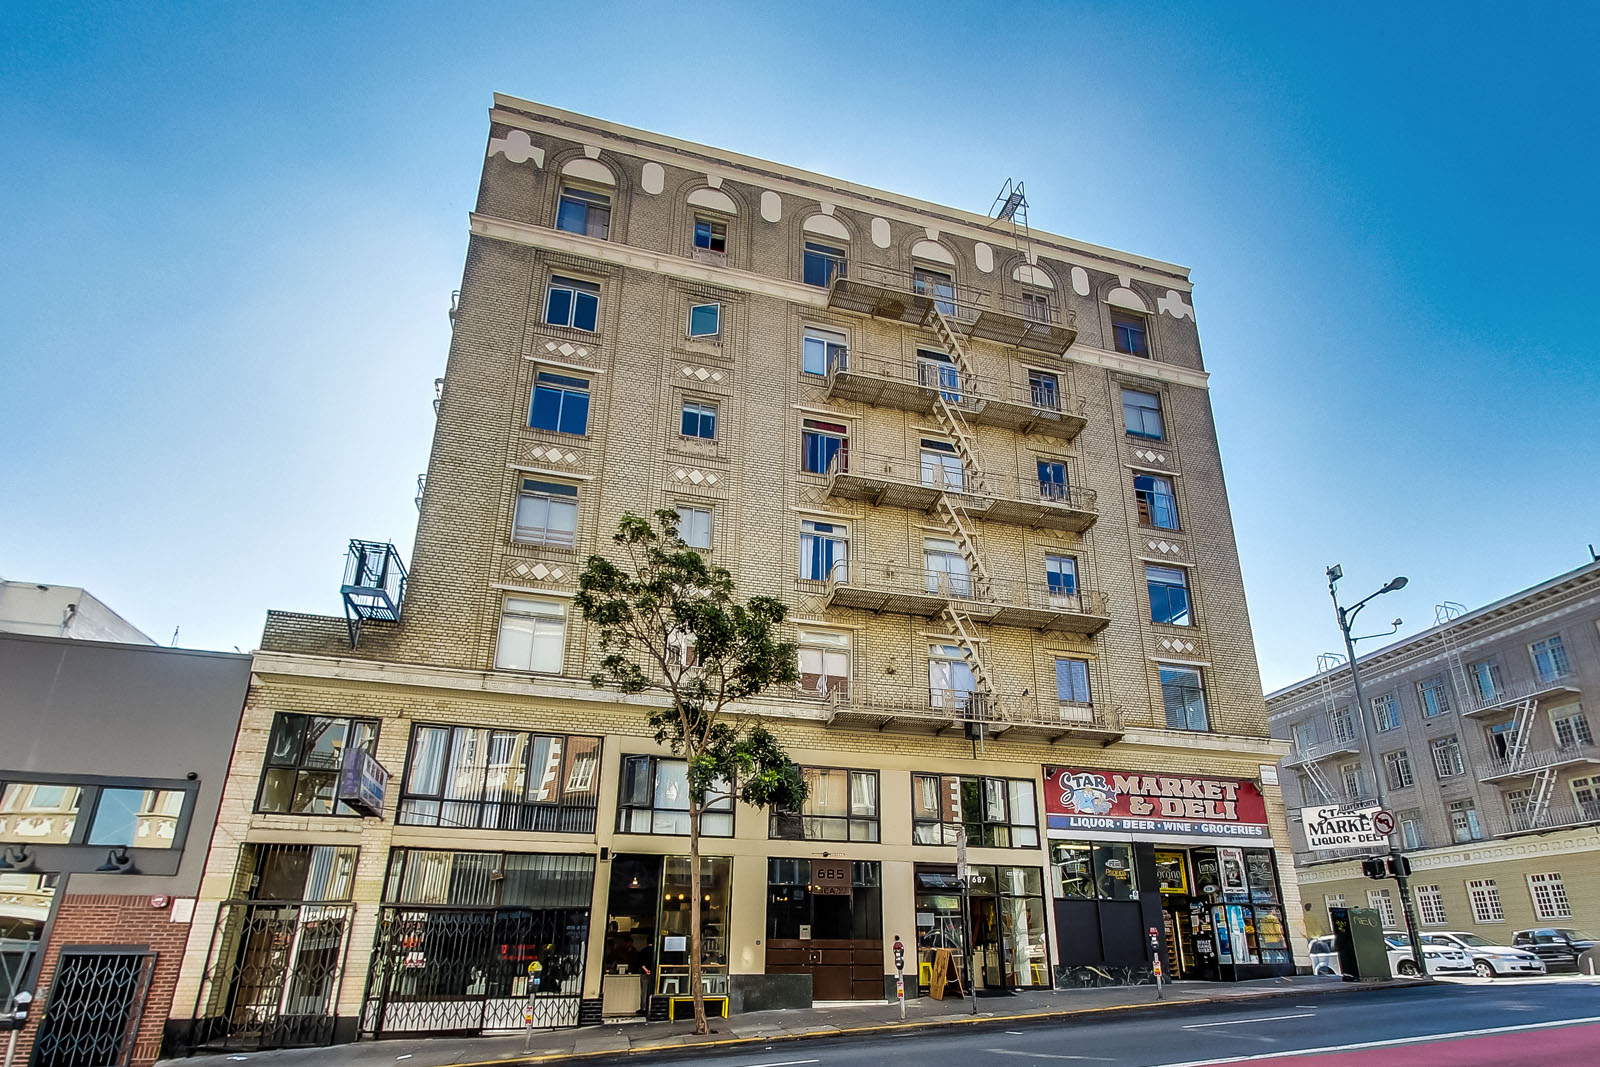 685 geary apartments in san francisco ca rh 685geary com